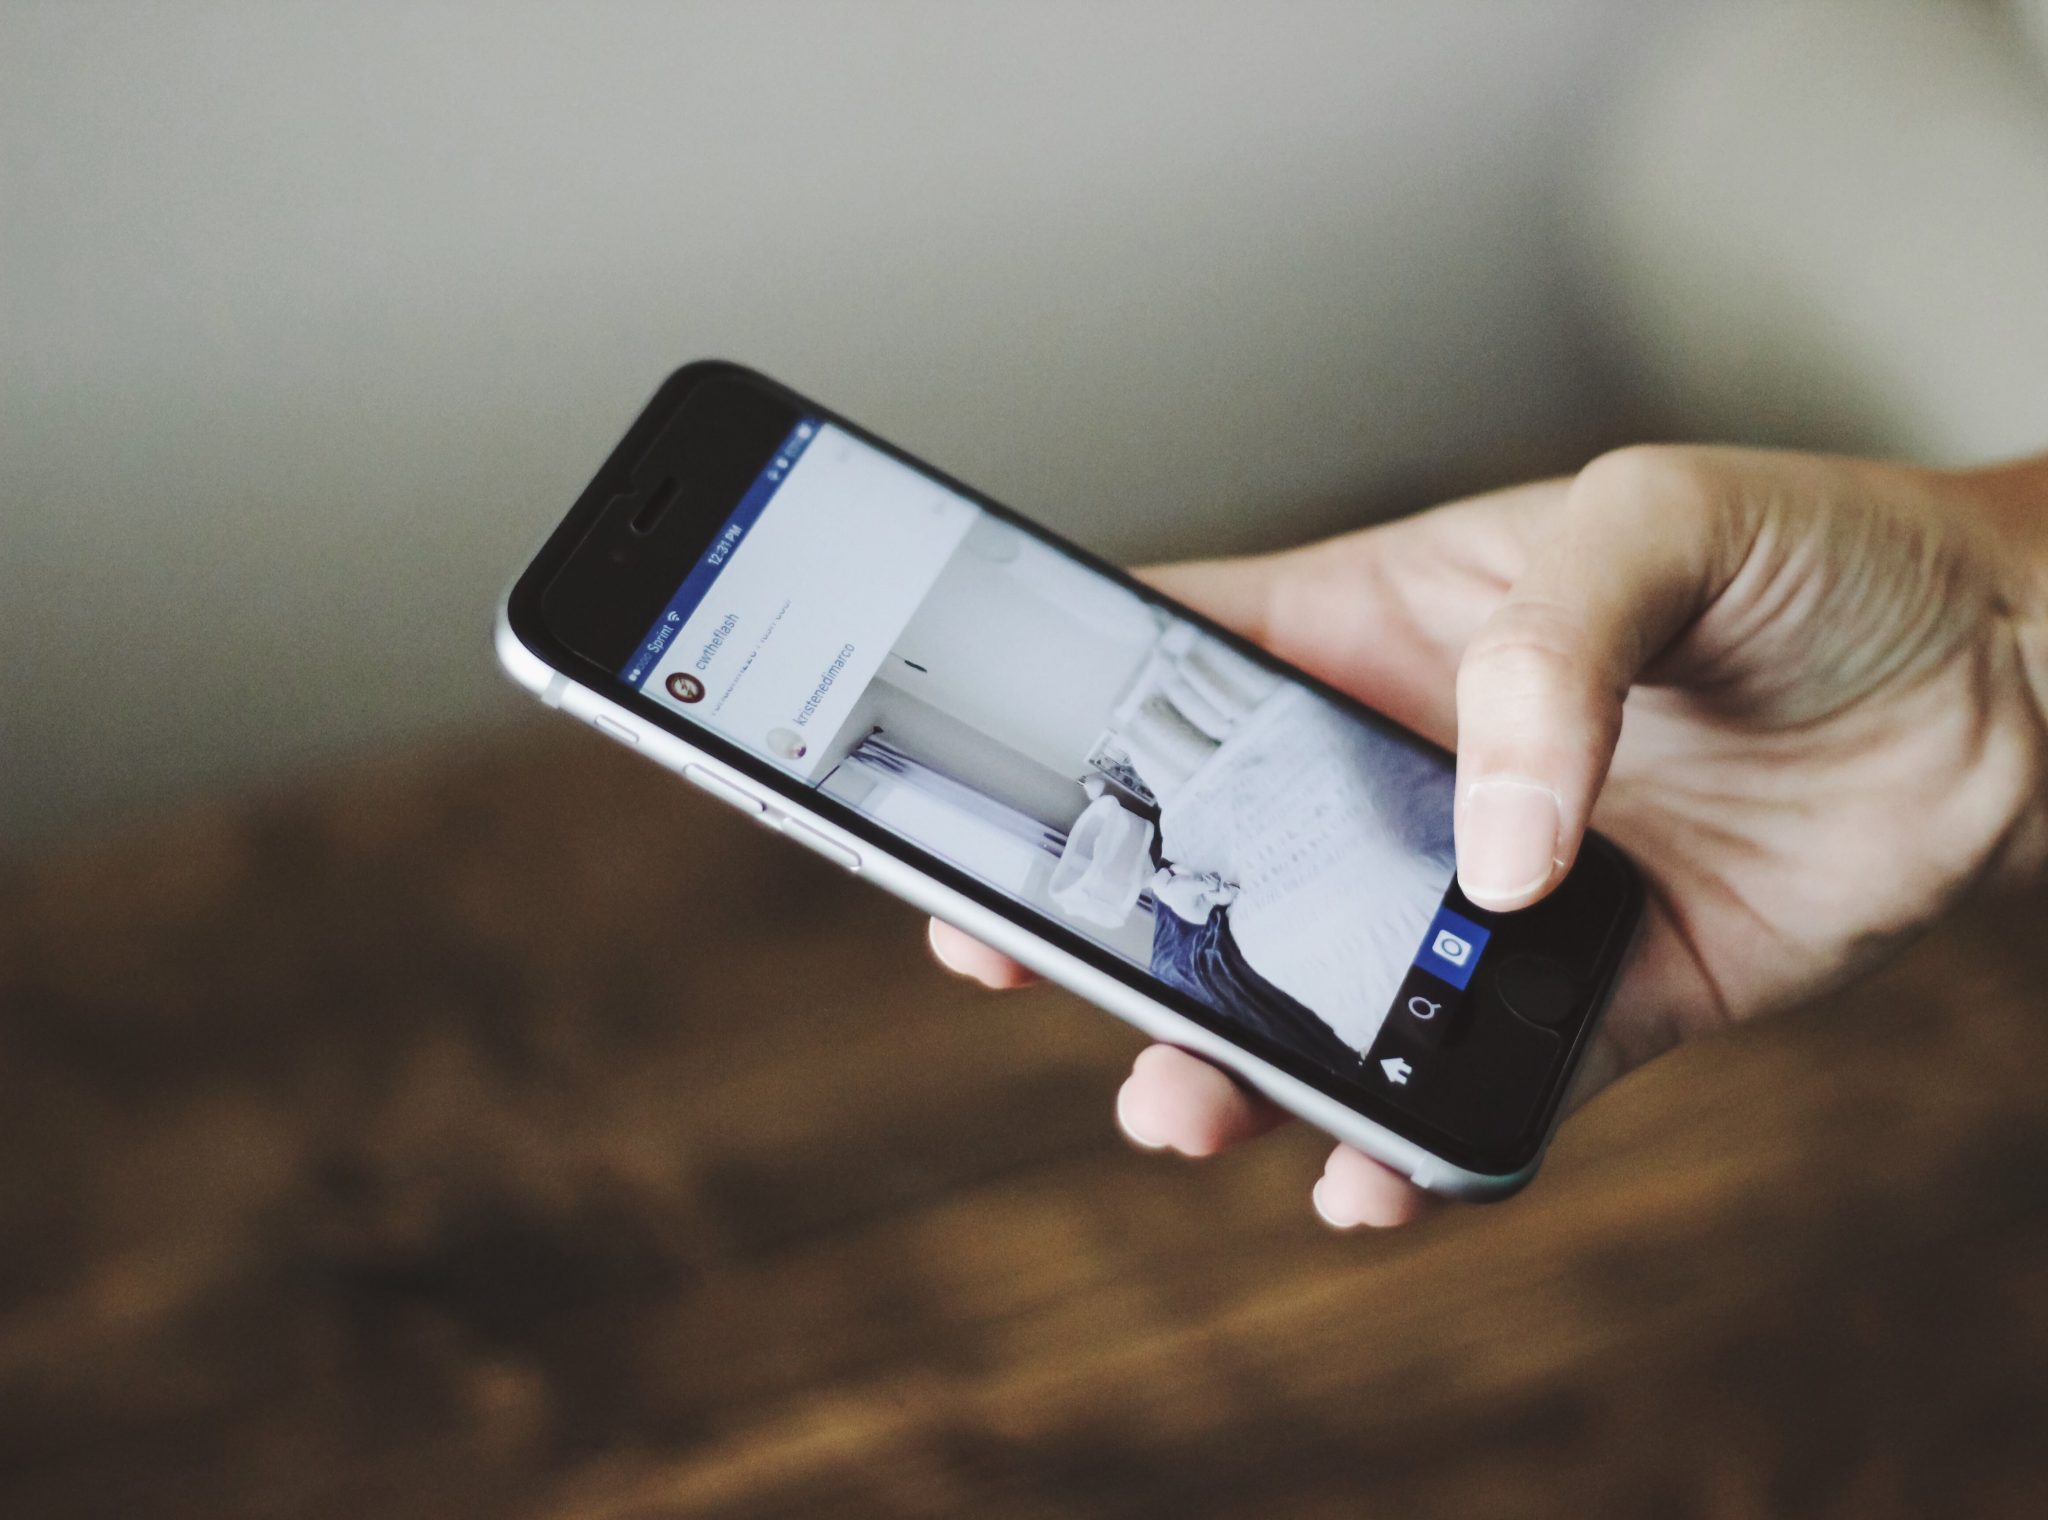 How you can use user generated content on Instagram